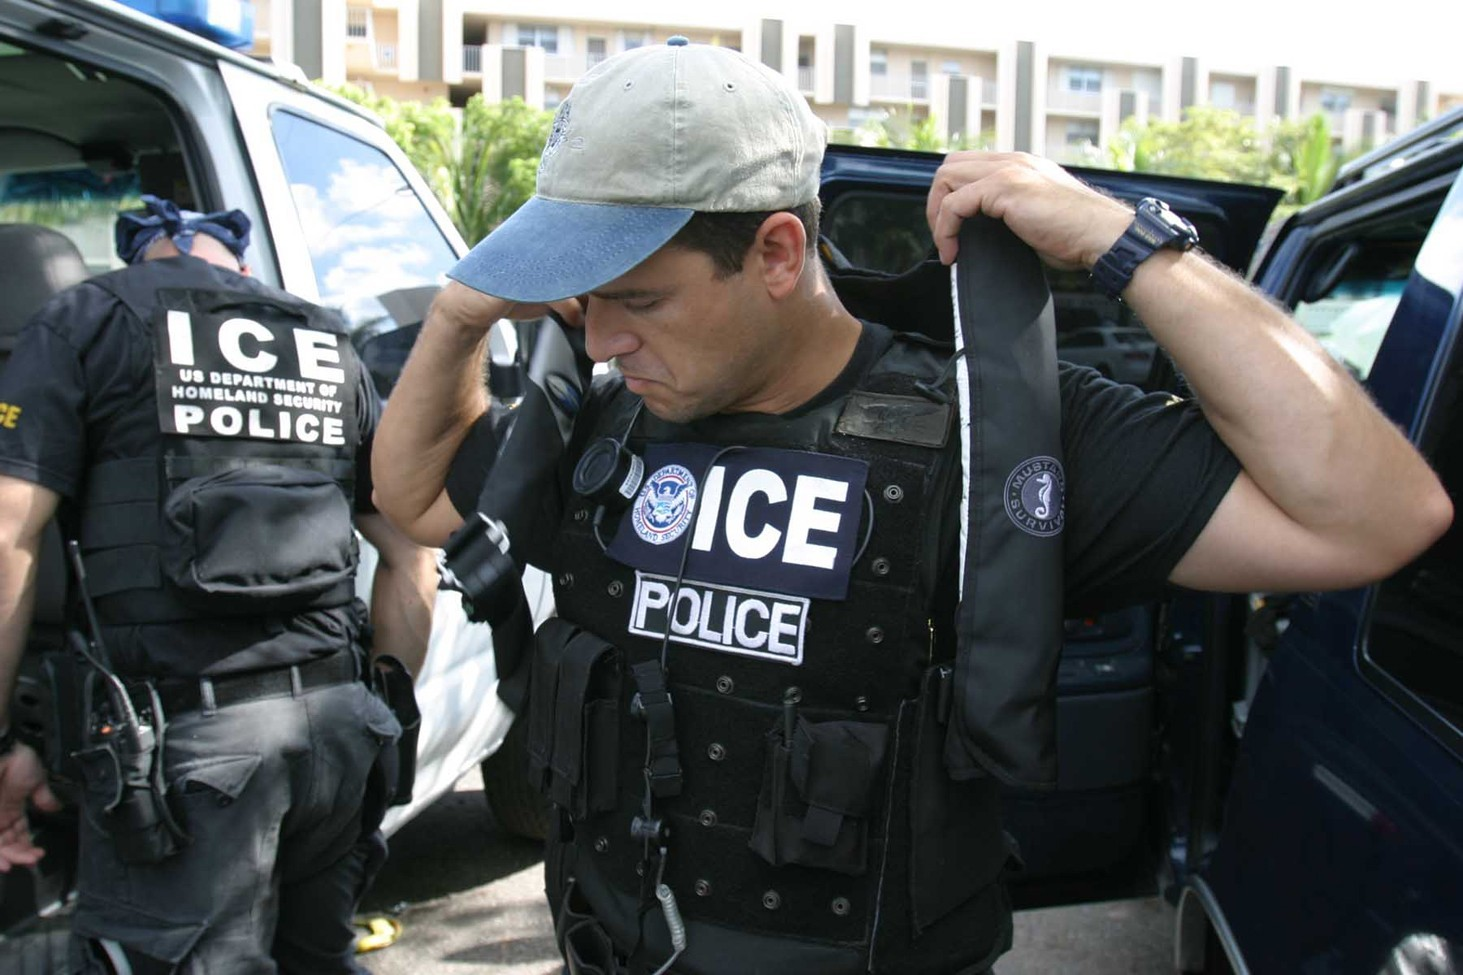 ICE tells California to bugger off AGAIN: Agents arrest another illegal alien criminal in 'defiance' of state law